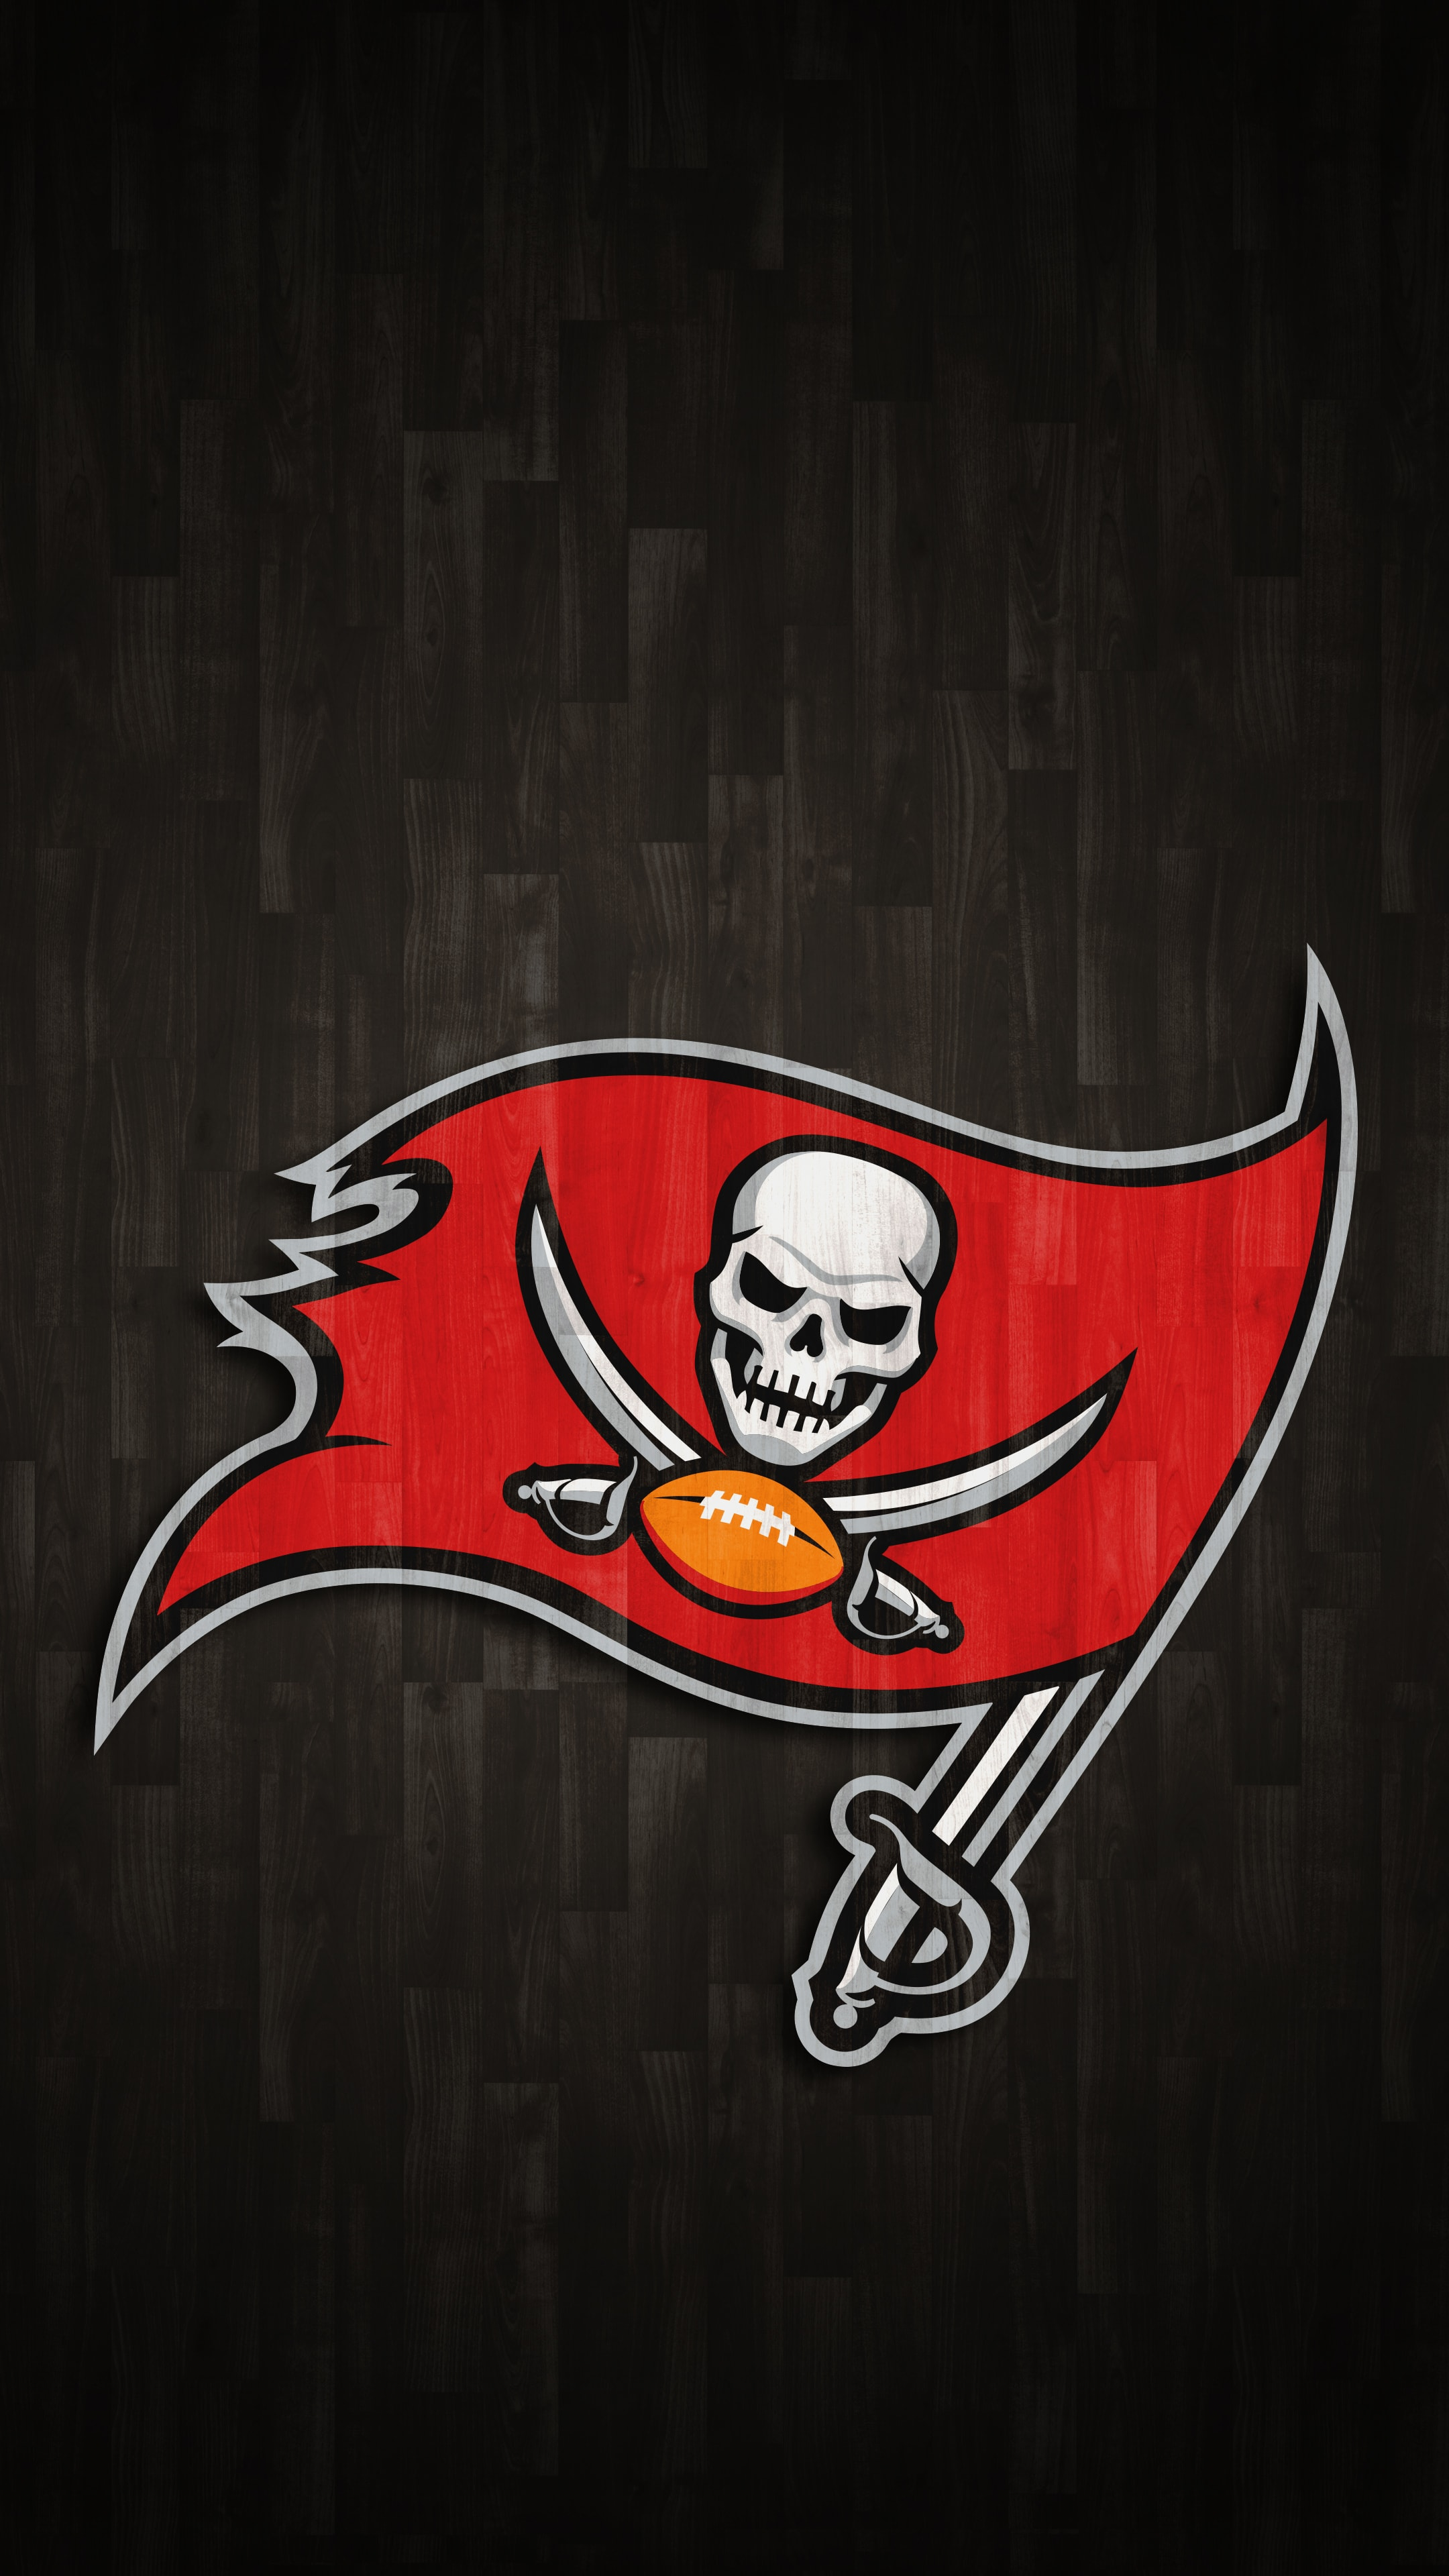 tampa bay buccaneers phone wallpaper kolpaper awesome free hd wallpapers tampa bay buccaneers phone wallpaper